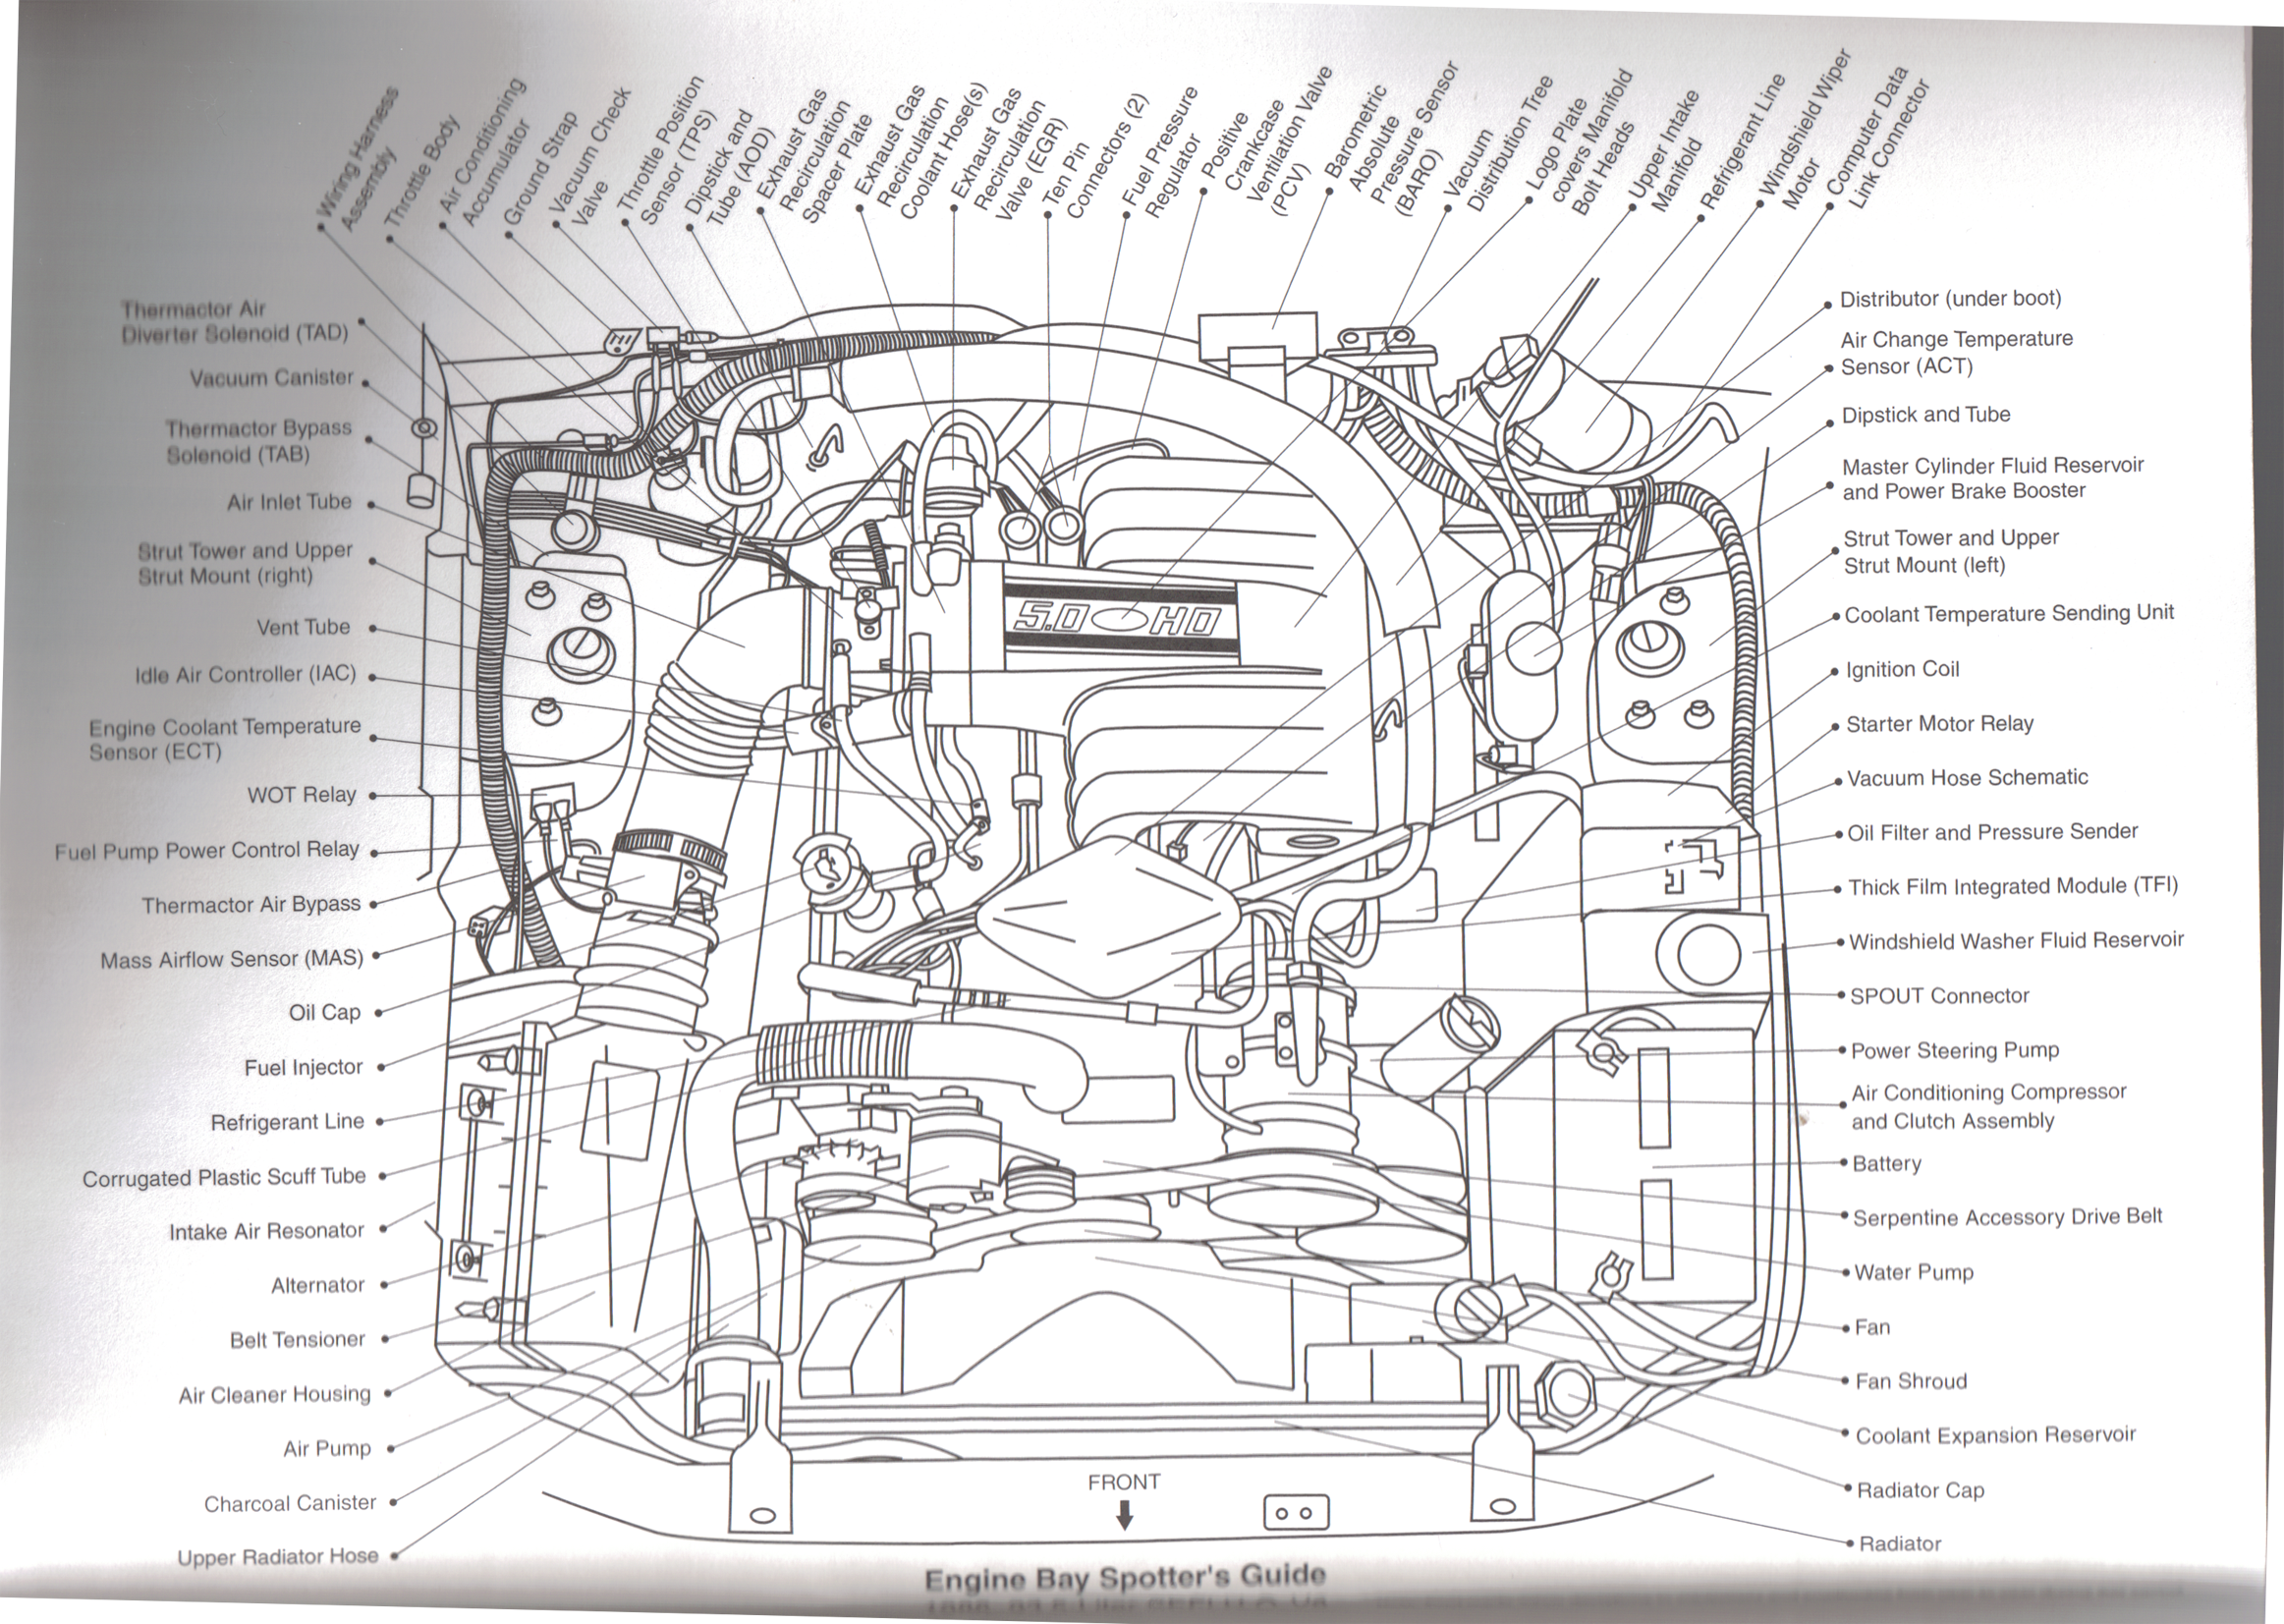 Hose Diagram For 96 Ford 5 8 Liter Engine Wiring Library 4 0 1987 1993 Foxbody 50 Sefi V8 Part